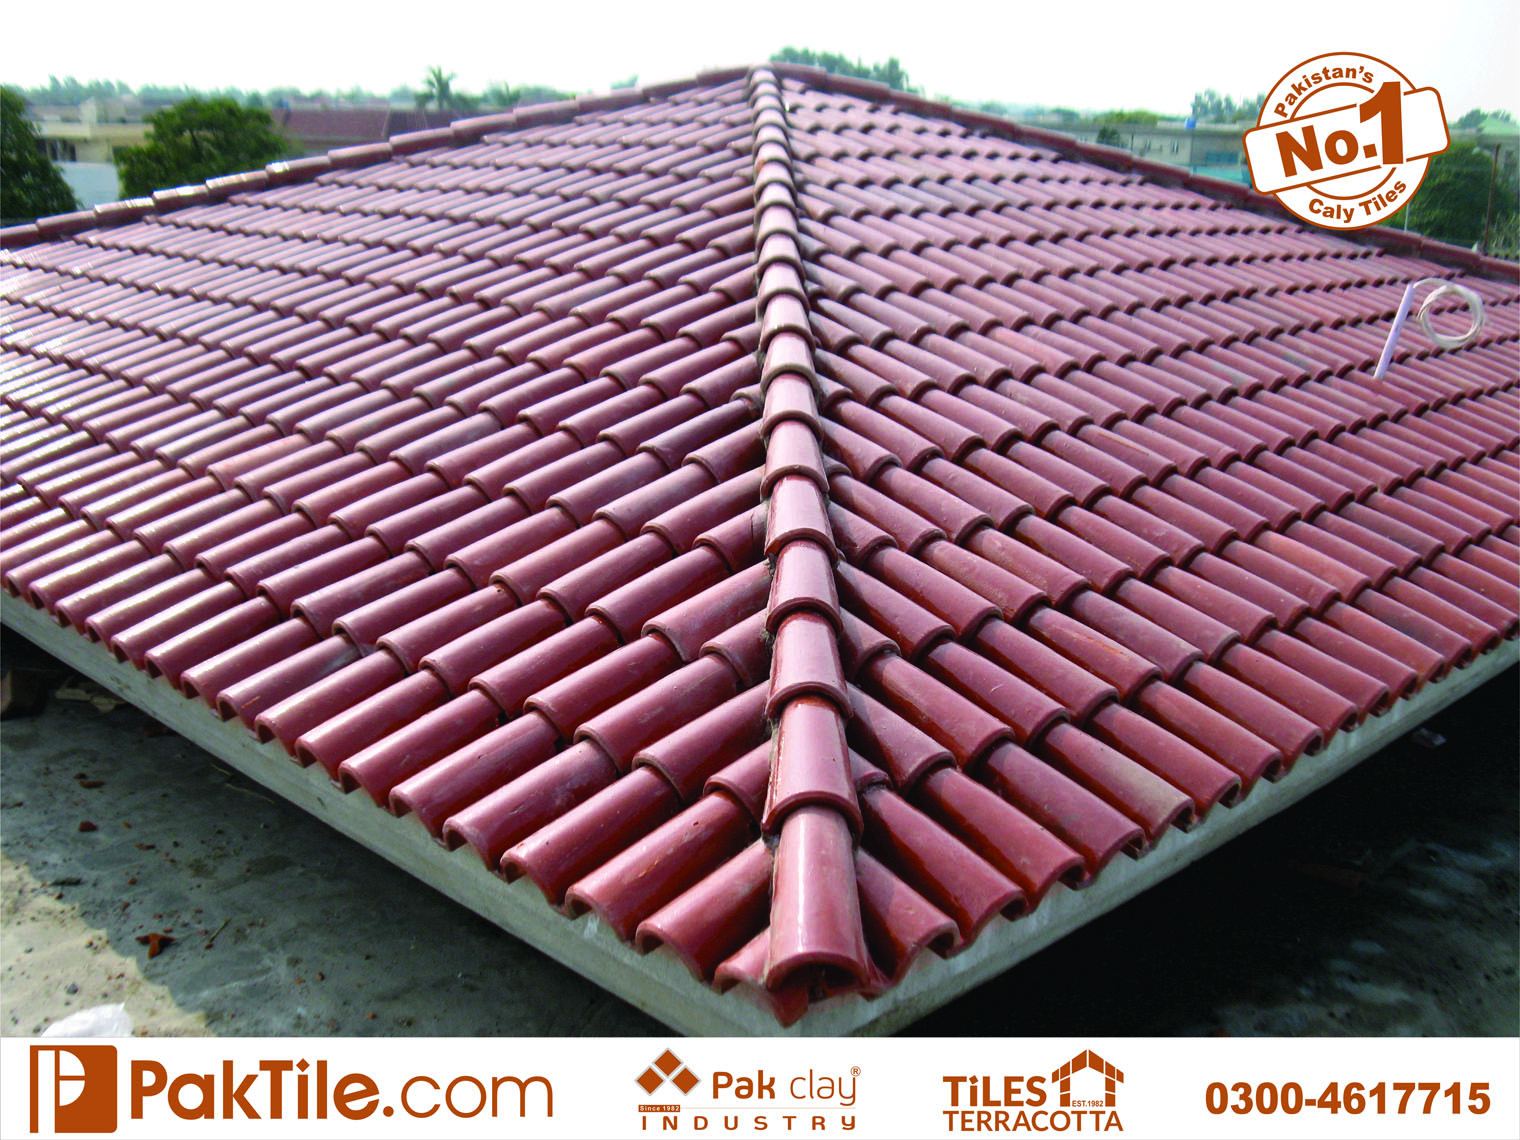 26 Pak clay buy online roof khaprail house design tiles colors in karachi lahore islamabad images